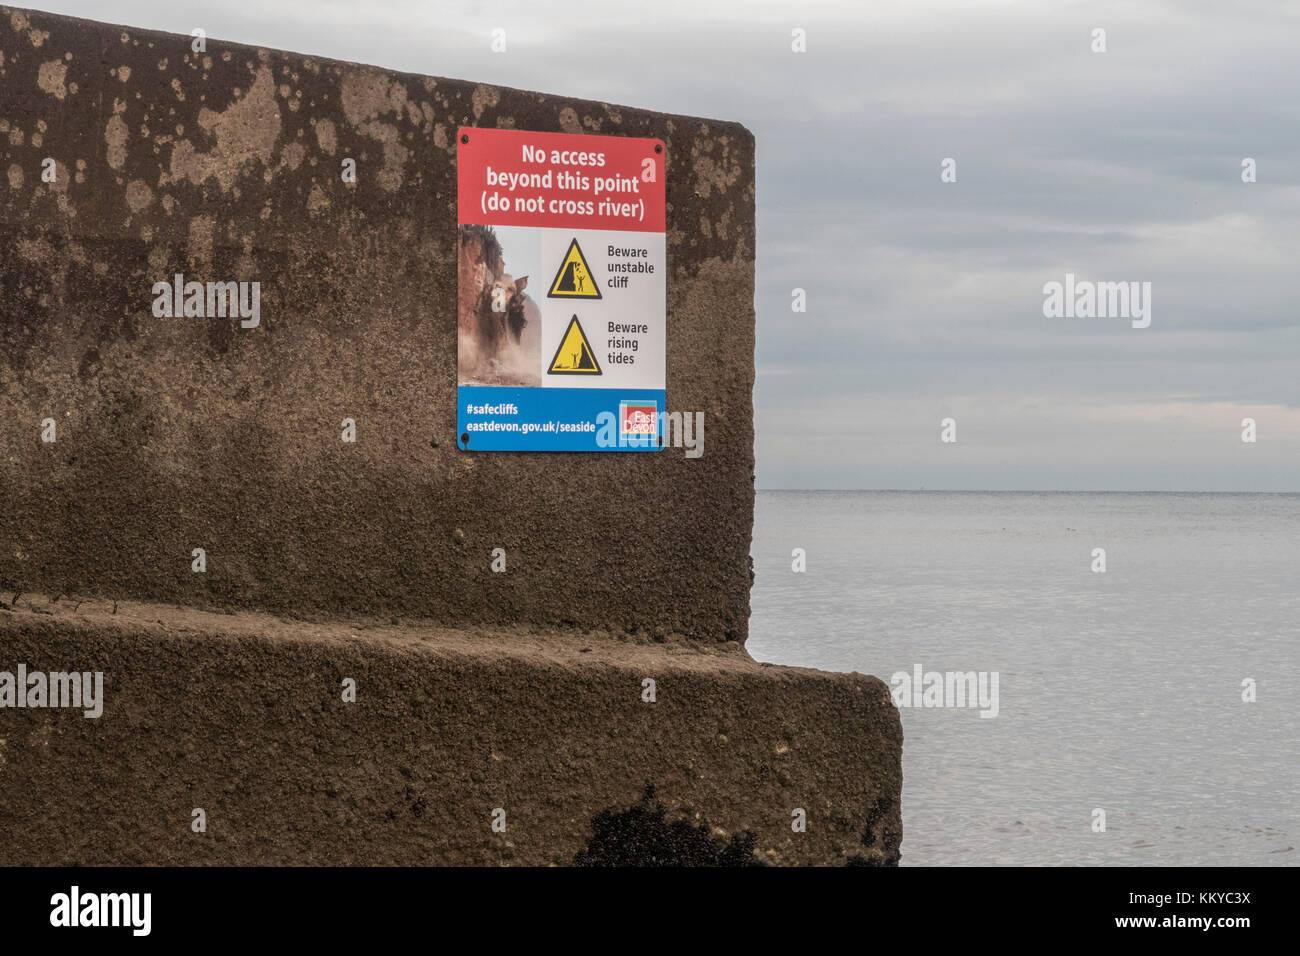 Warning sign on the seafront at Sidmouth, do not cross river, unstable cliff,beware rising tides. - Stock Image